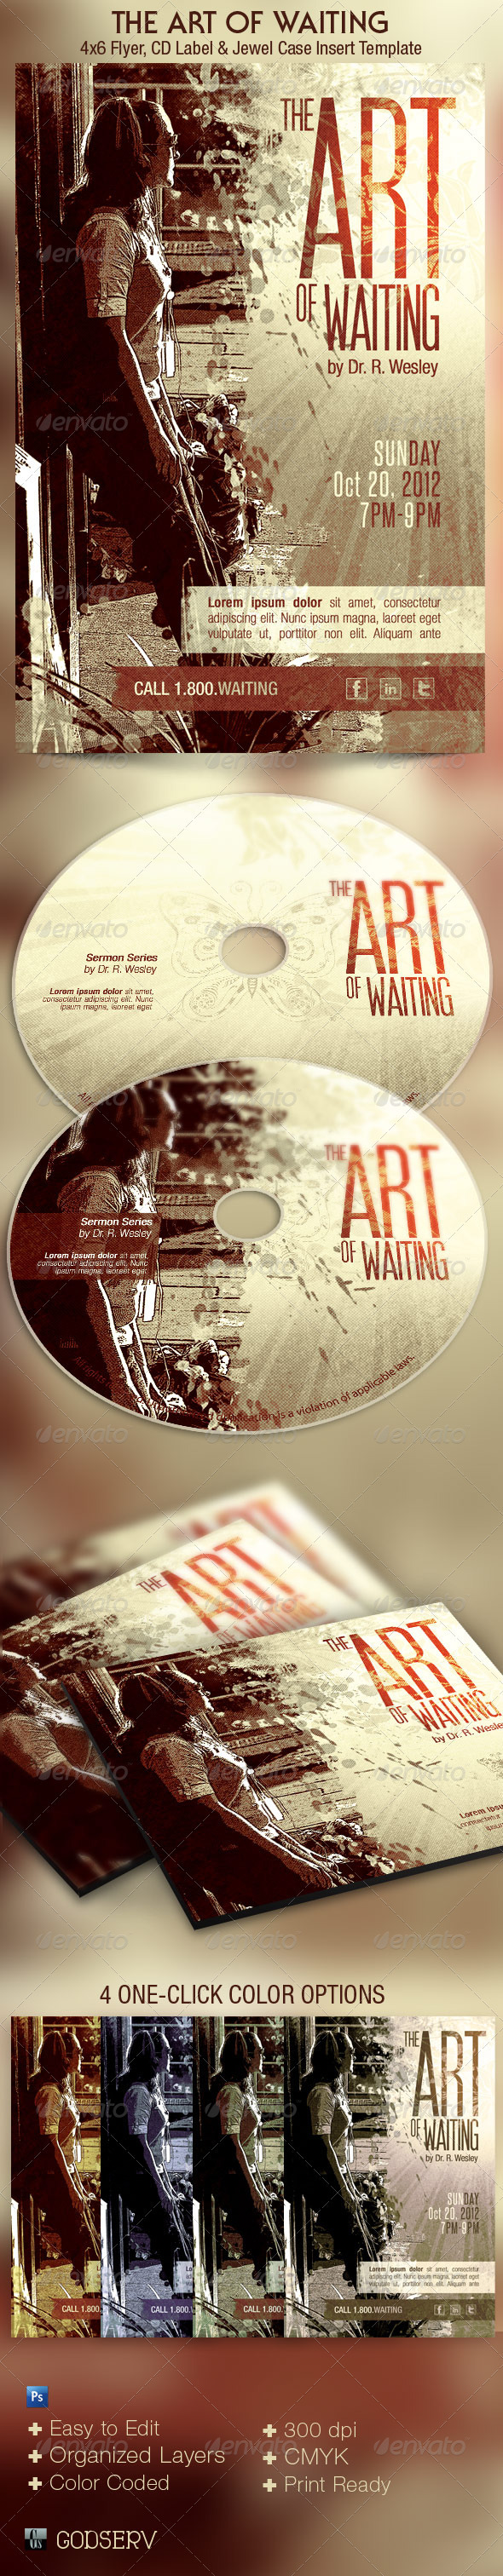 Art of Waiting Retro Flyer CD Template  - Church Flyers